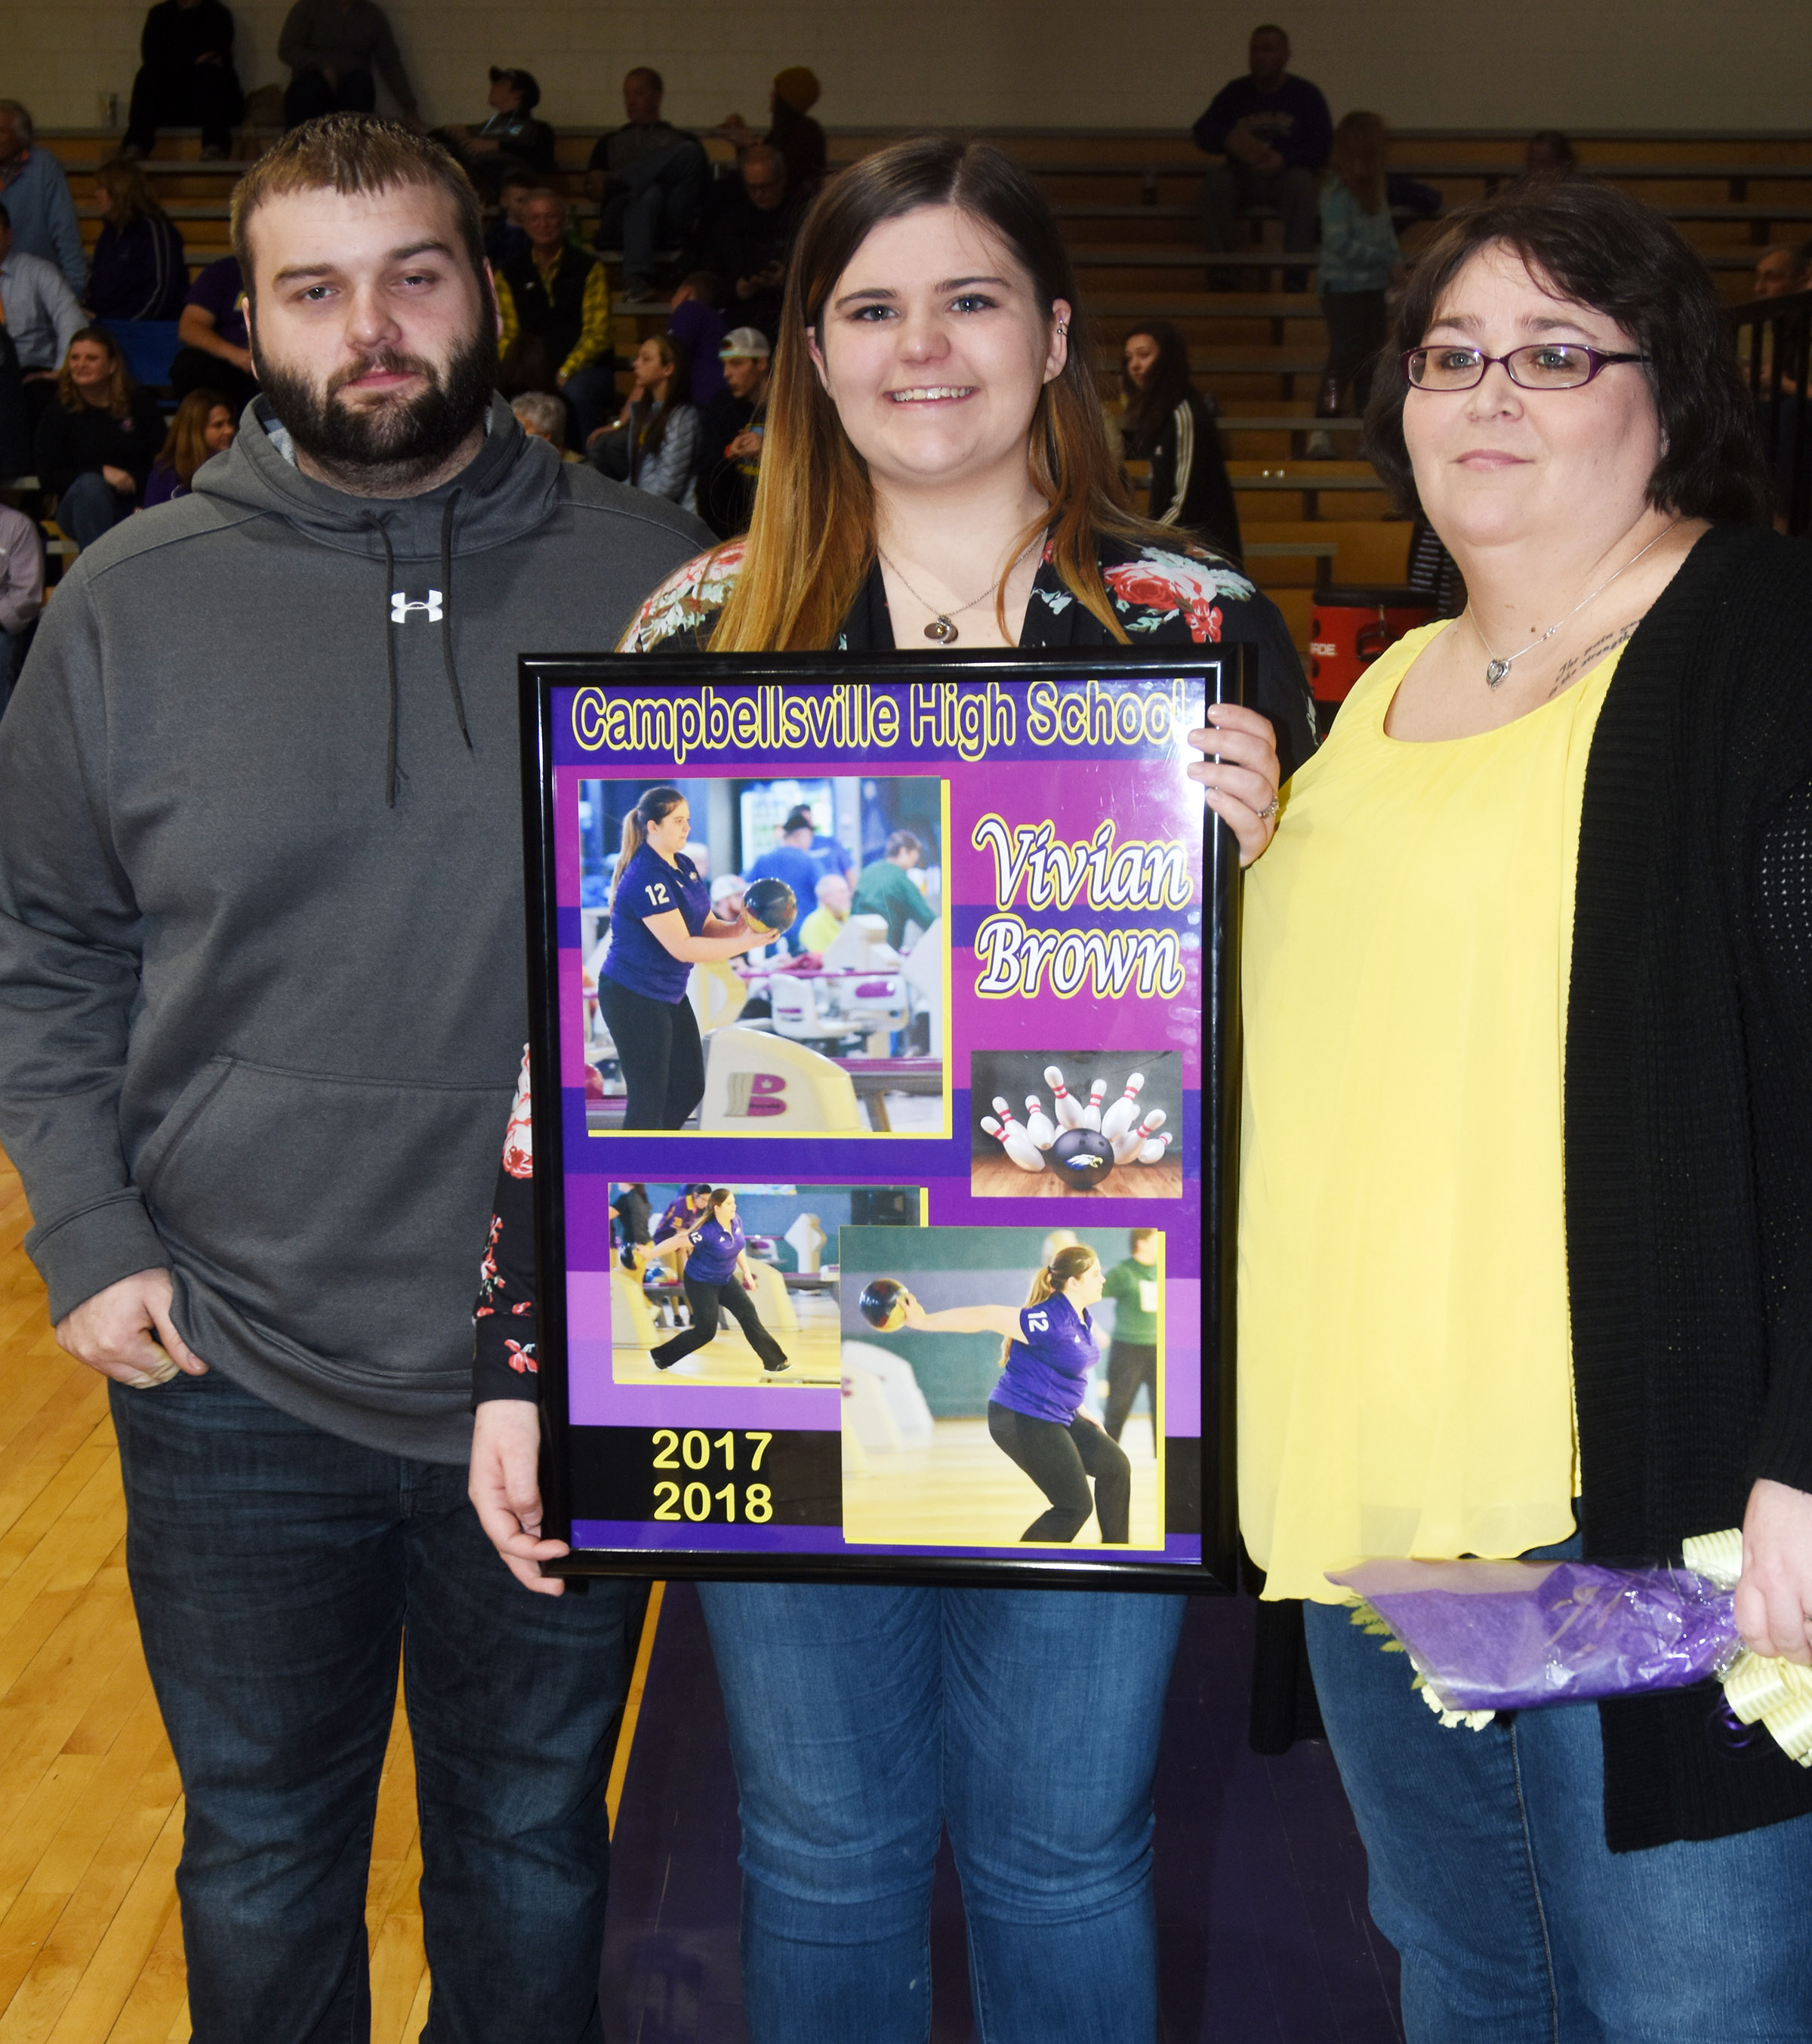 CHS senior bowling team member Vivian Brown is honored. She is pictured with her parents, Andrew and Tonya Tate.